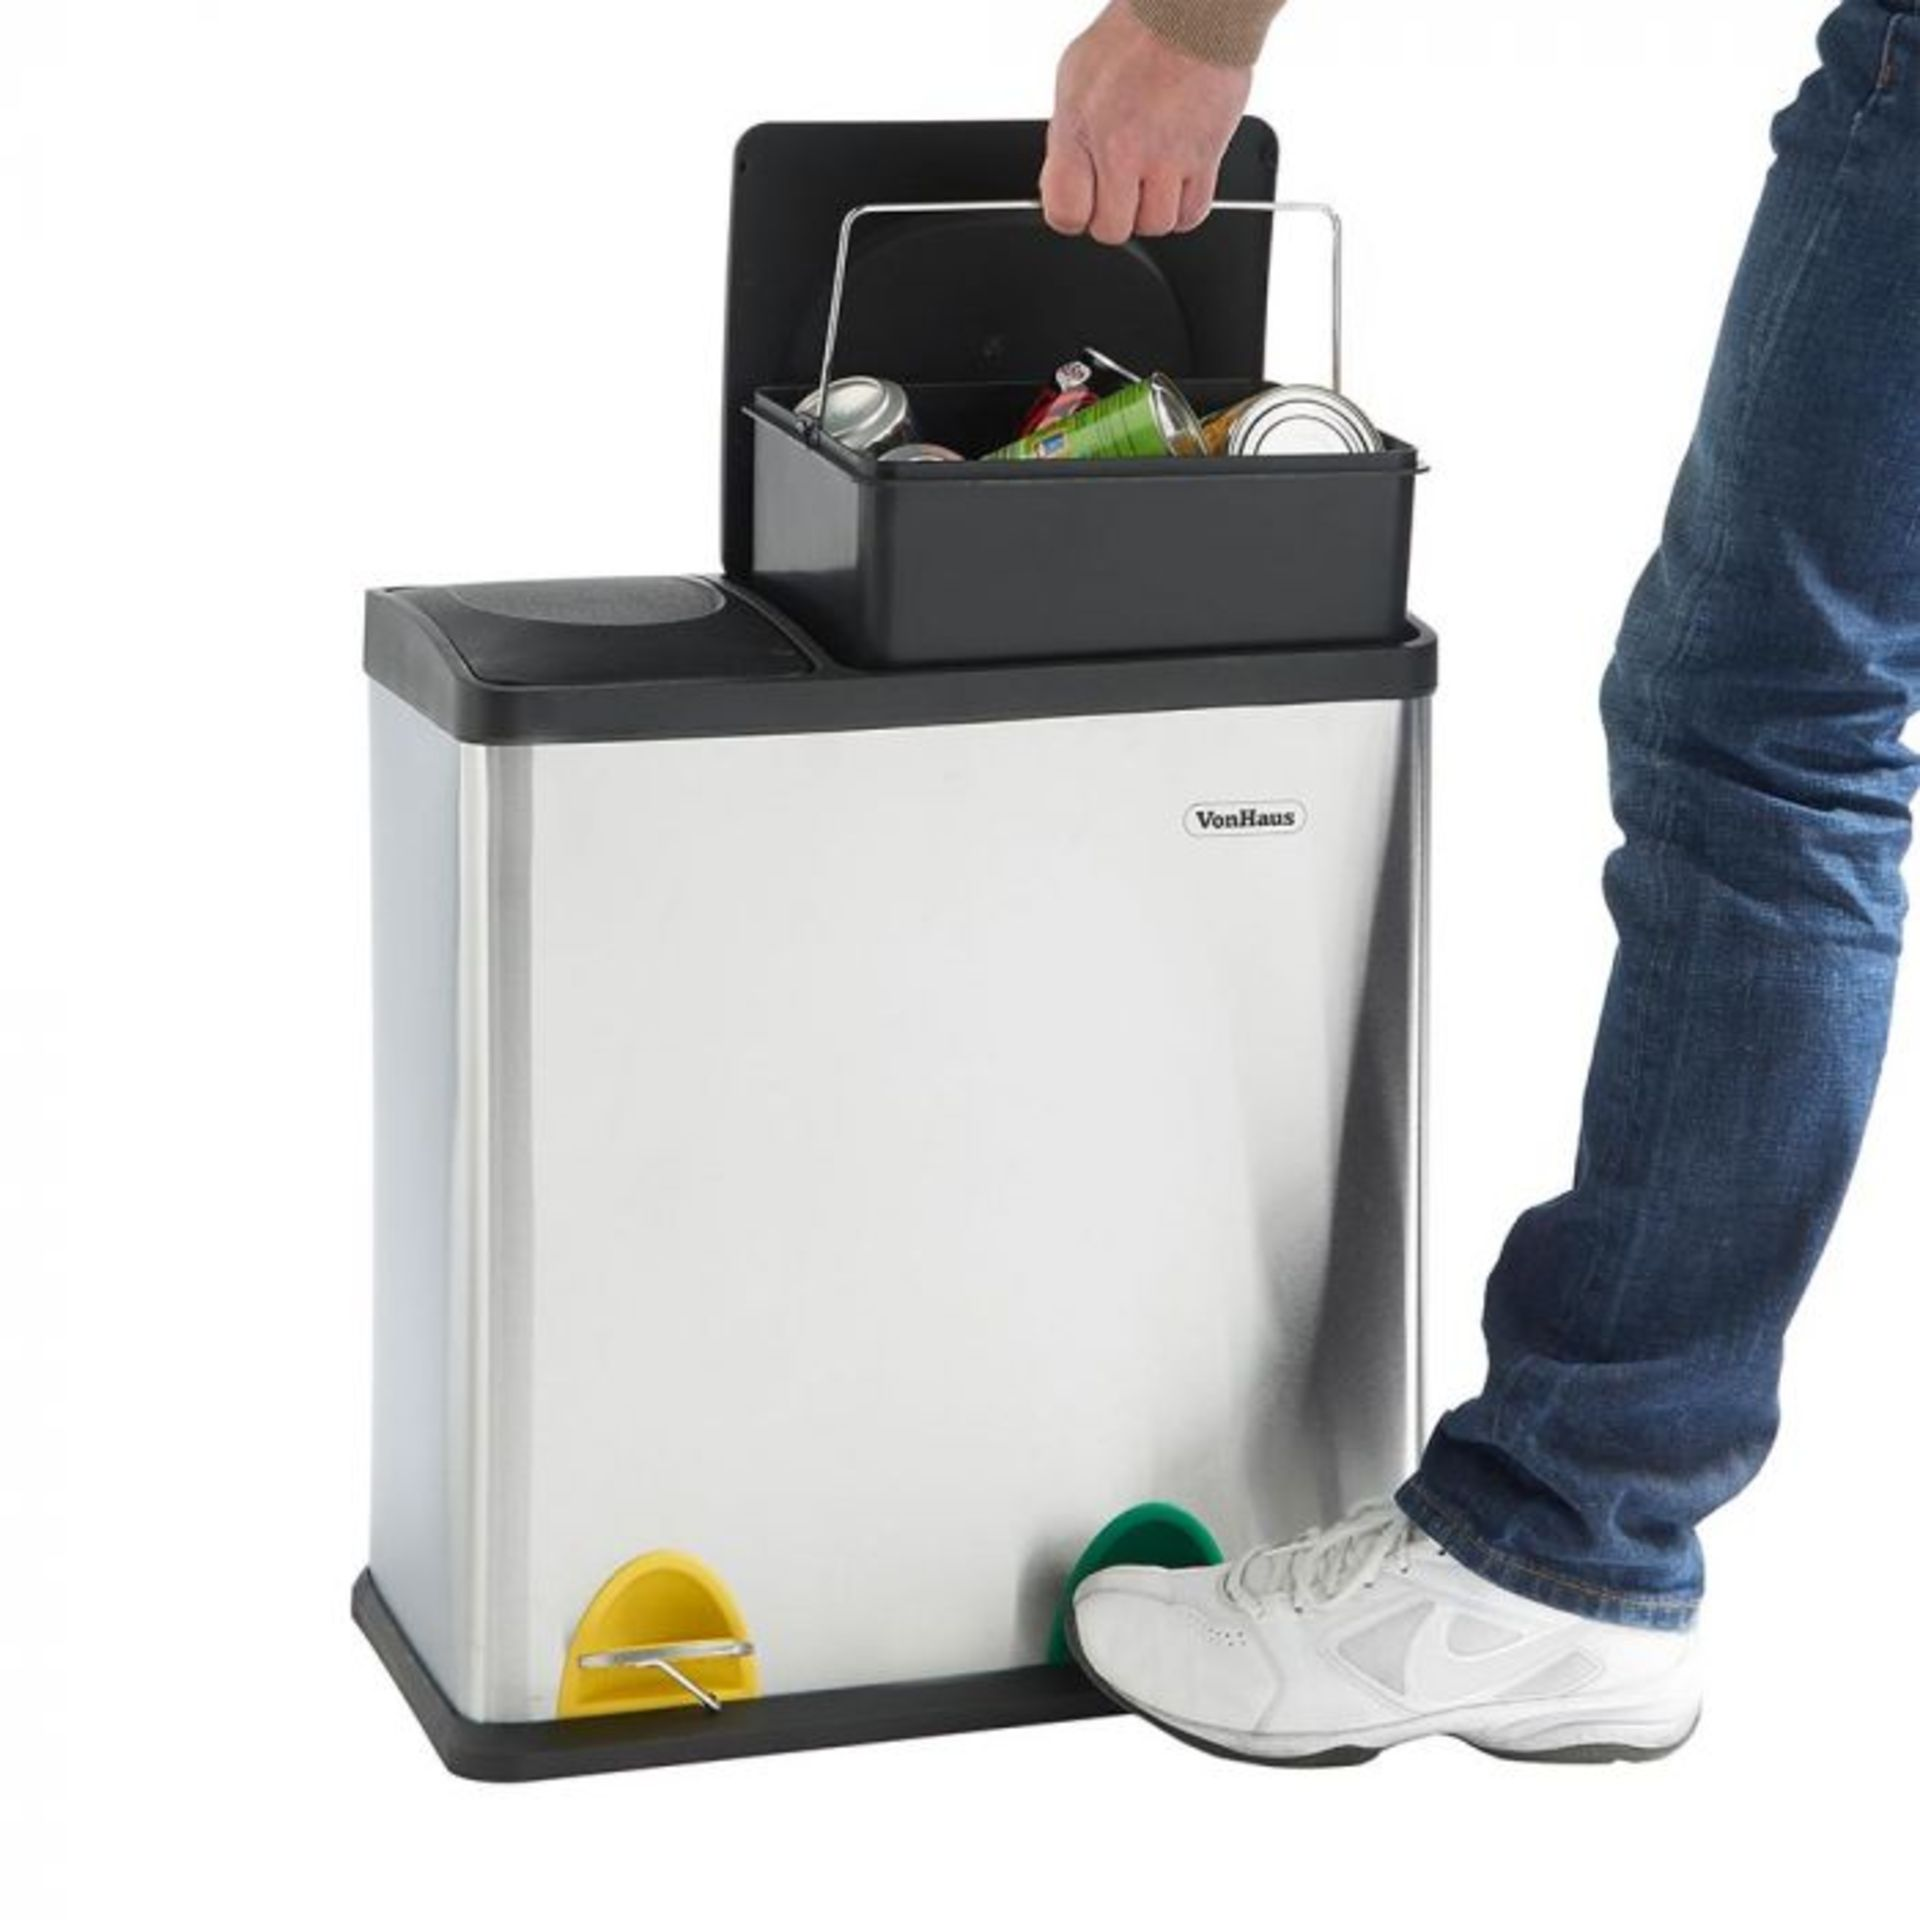 Lot 389 - (S334) 36L 2 in 1 Recycling Bin Streamline your recycling routine! Suitable for general househ...